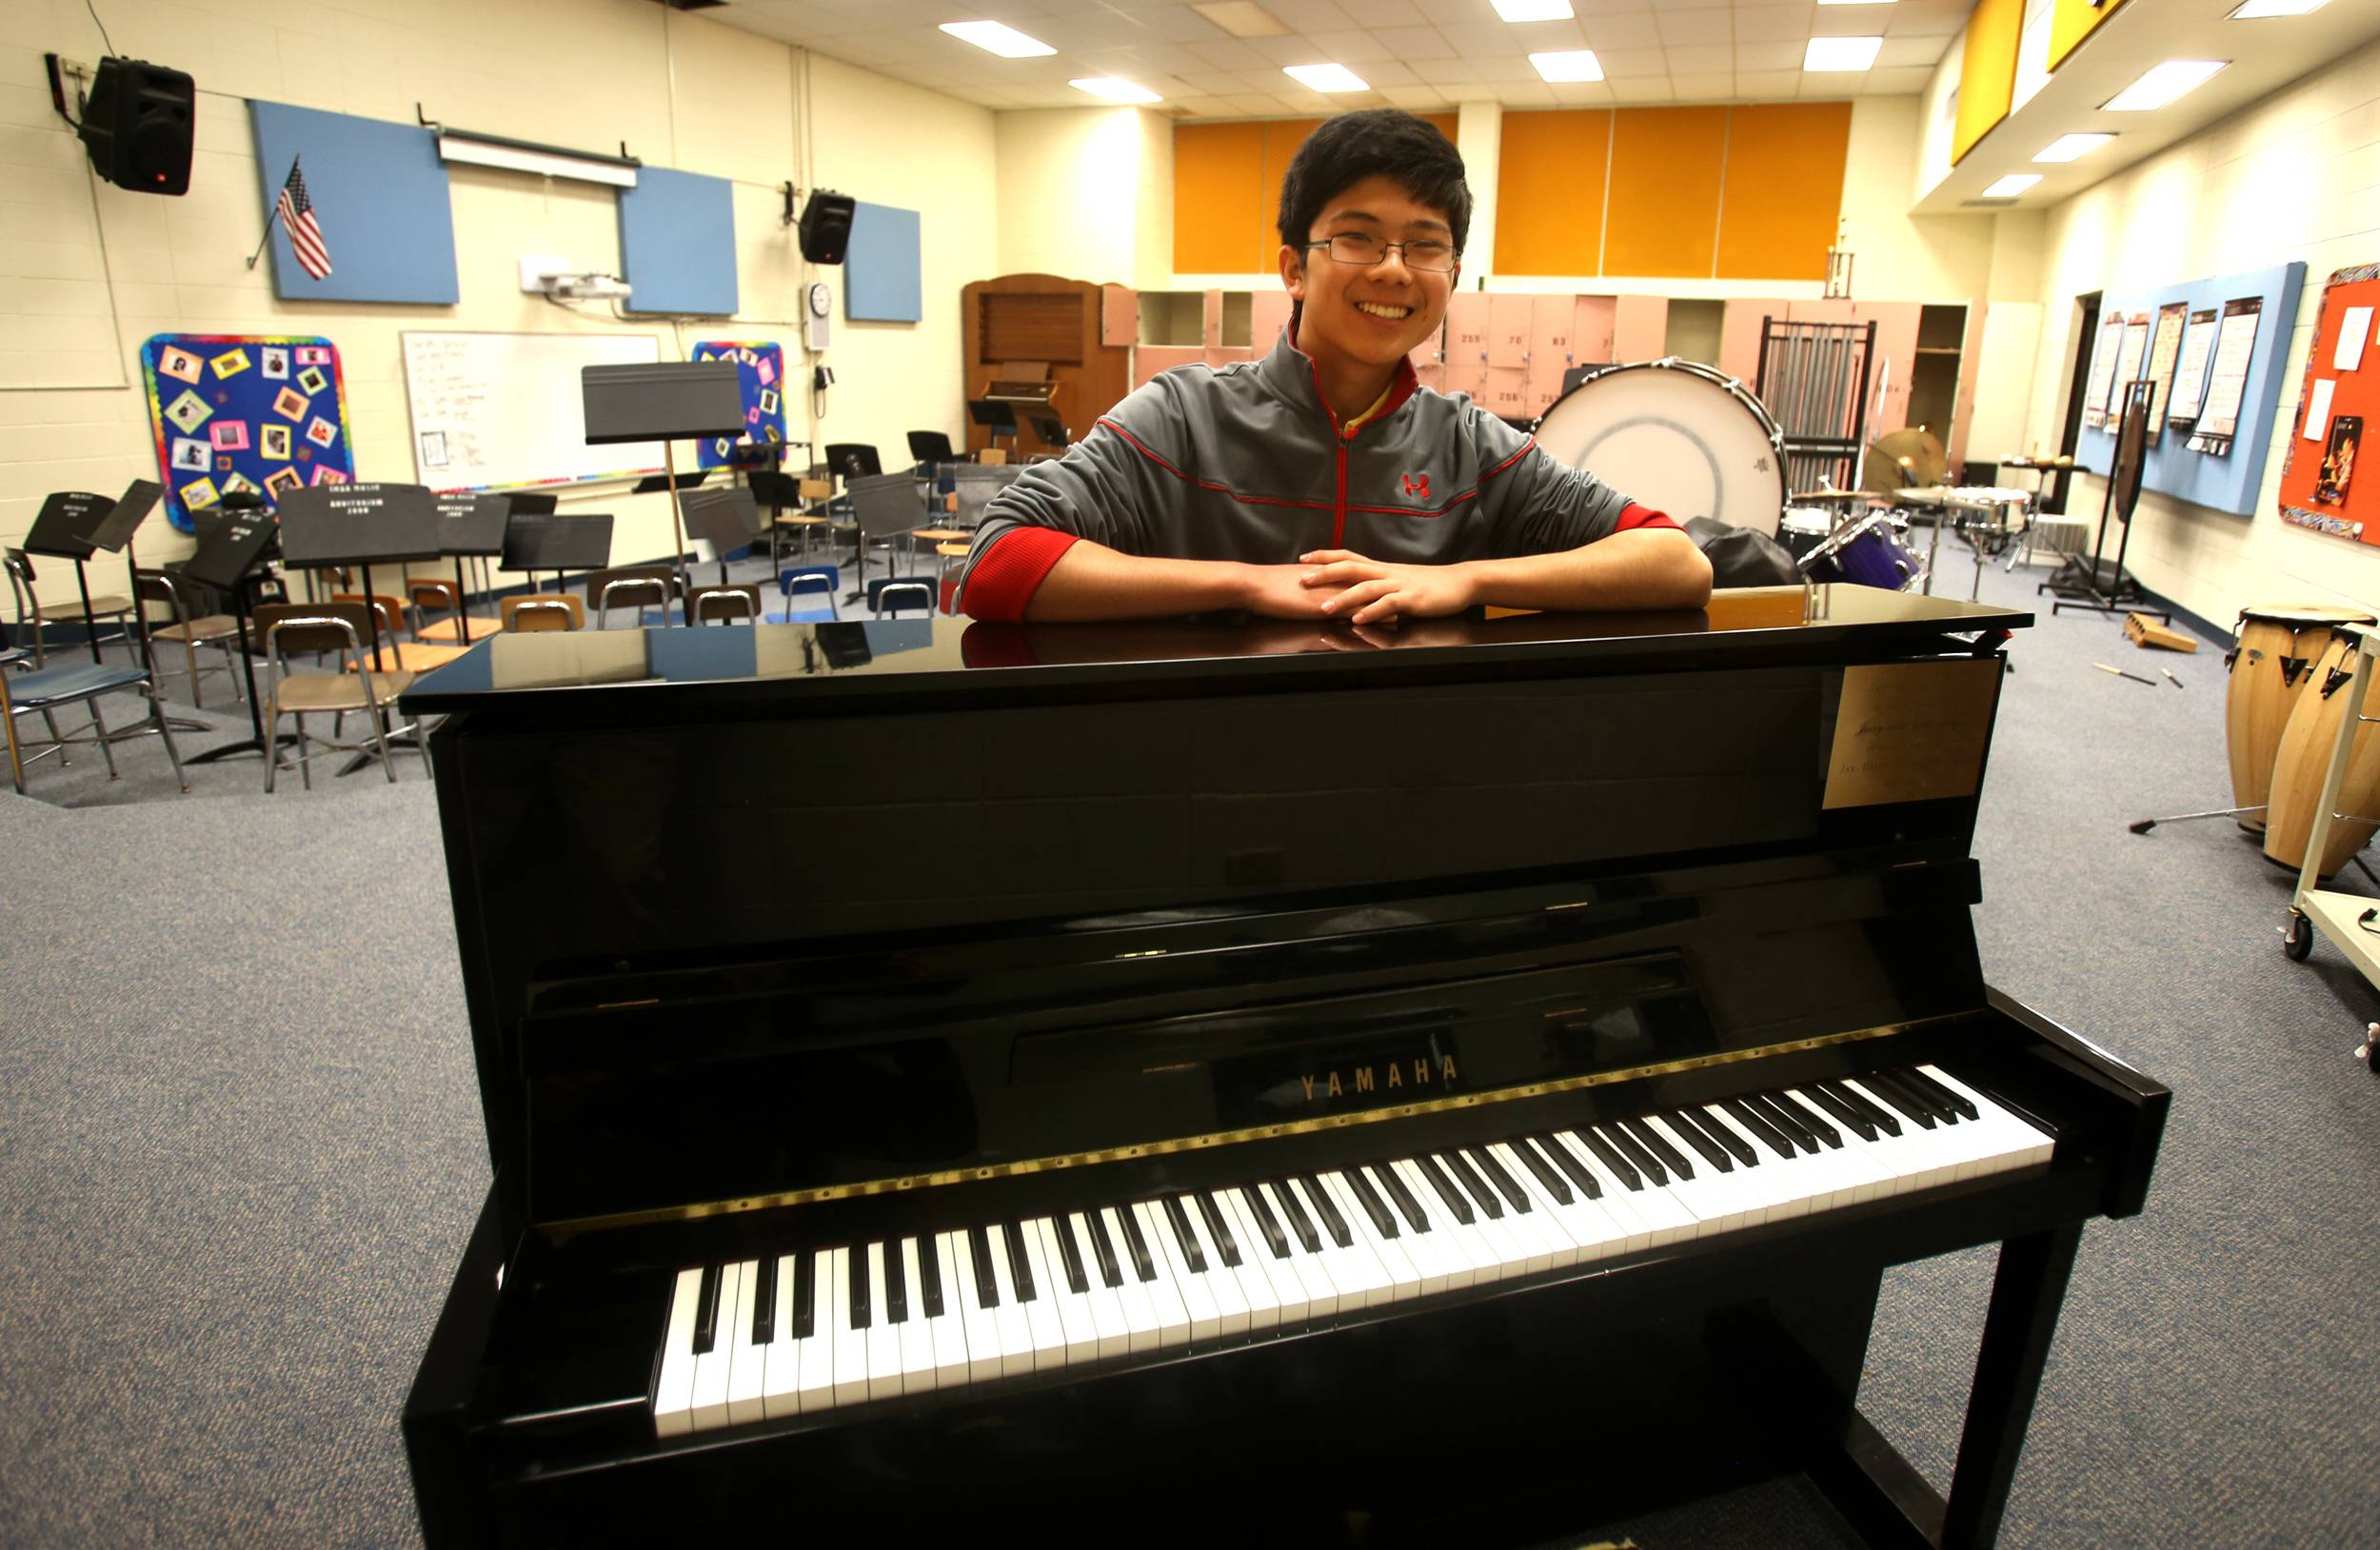 Bolingbrook teen finds patterns of success across fields